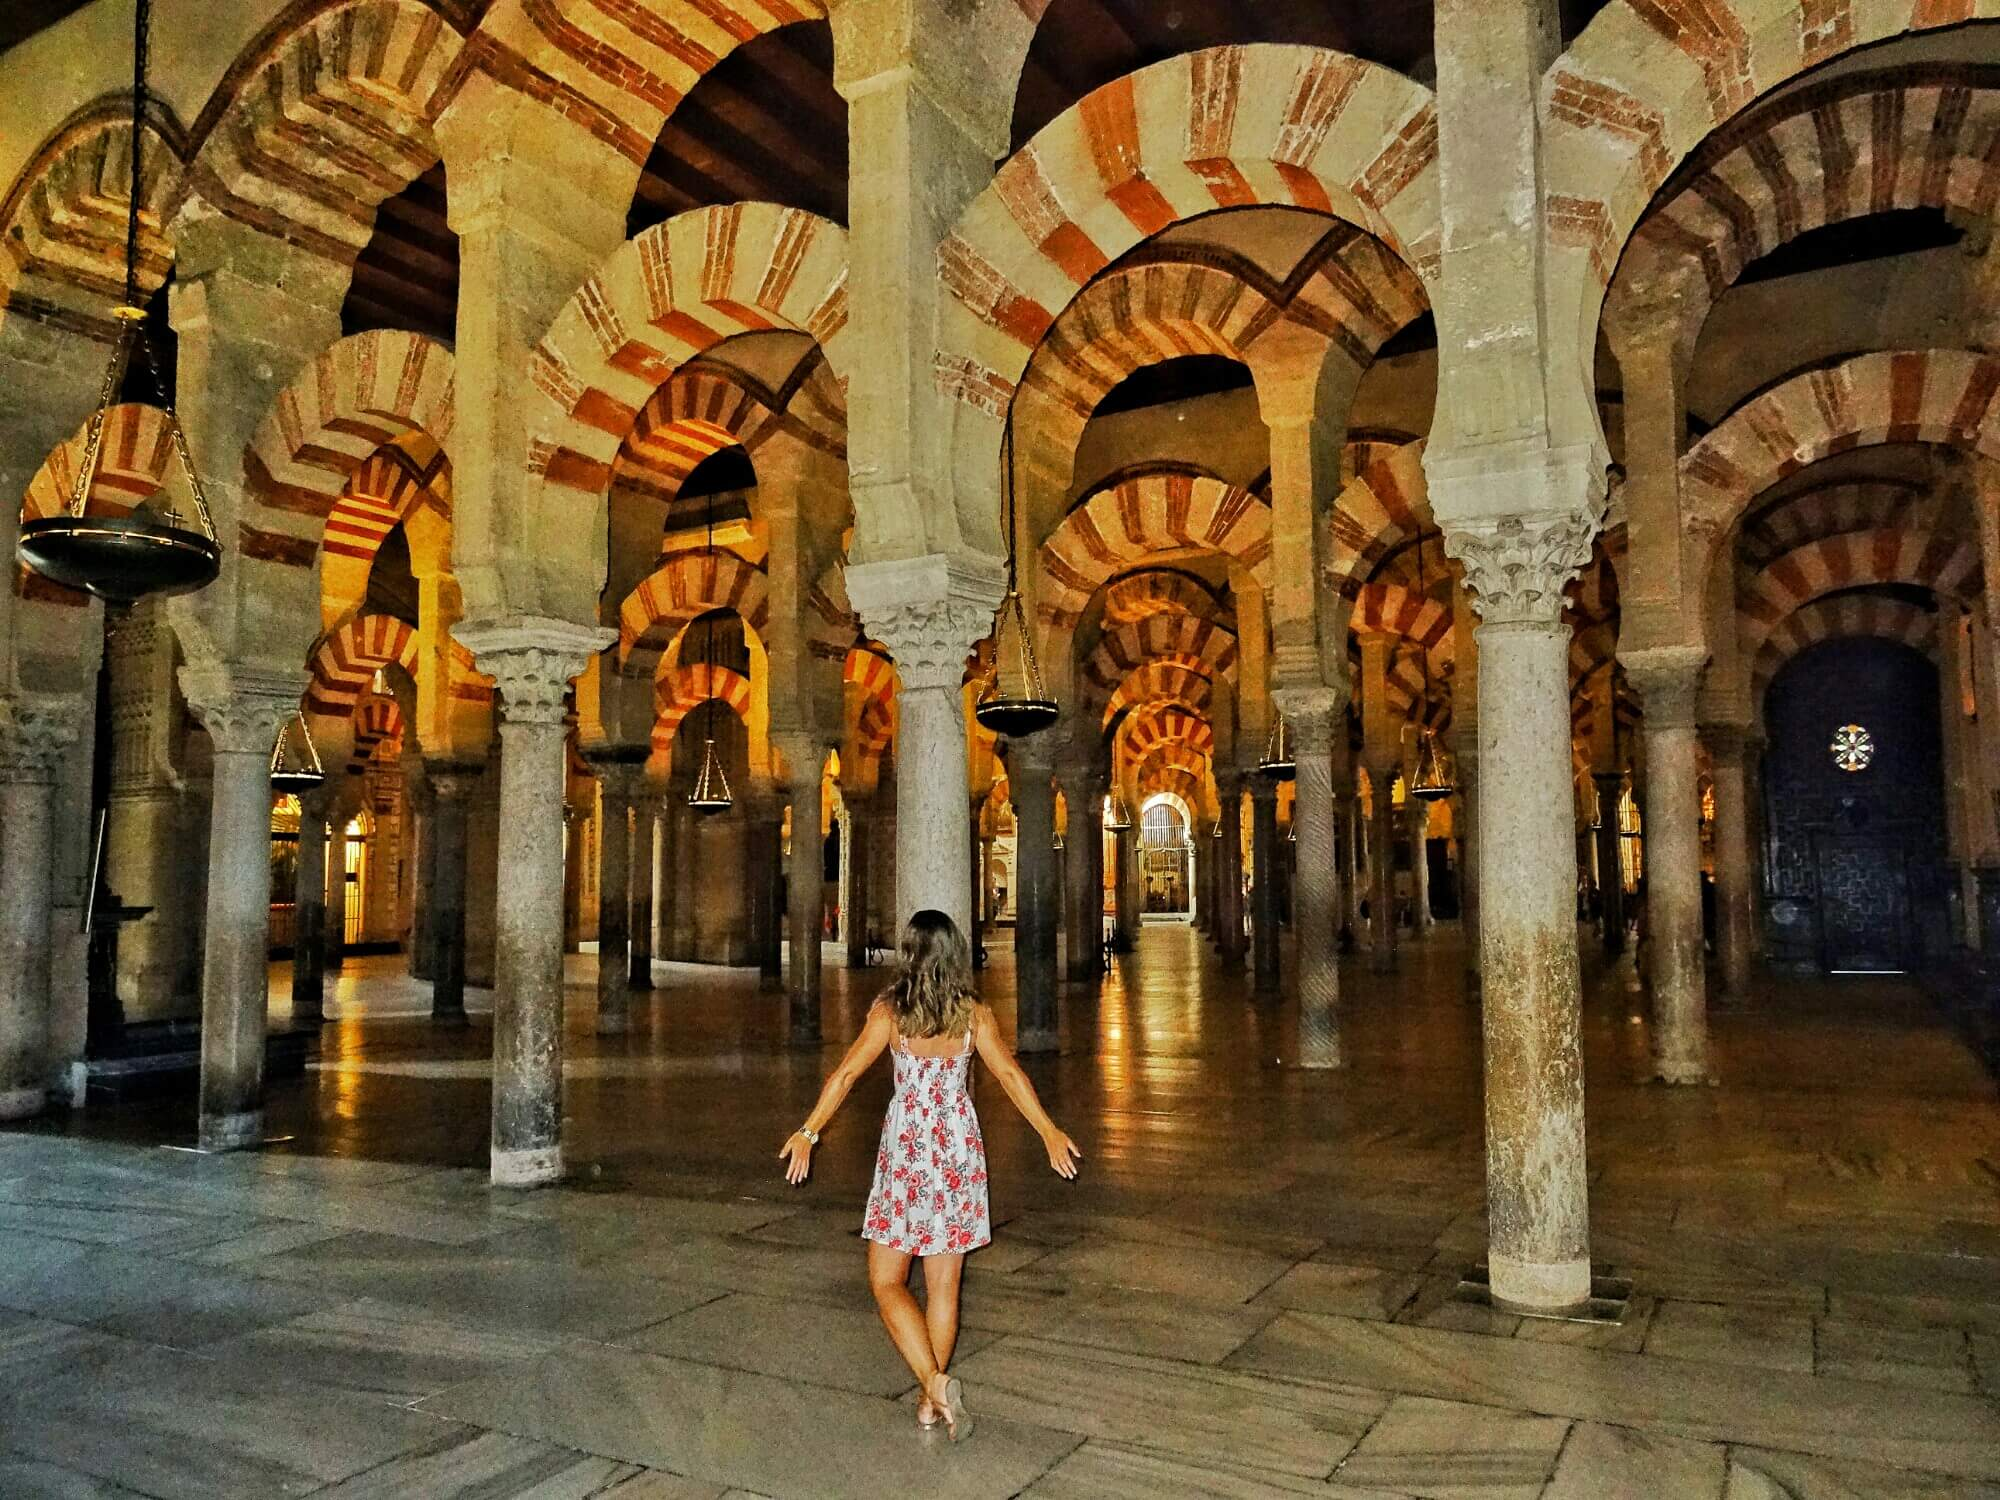 The mezquita in cordoba photos that will make you obsessed - Mezquita de cordoba visita nocturna ...